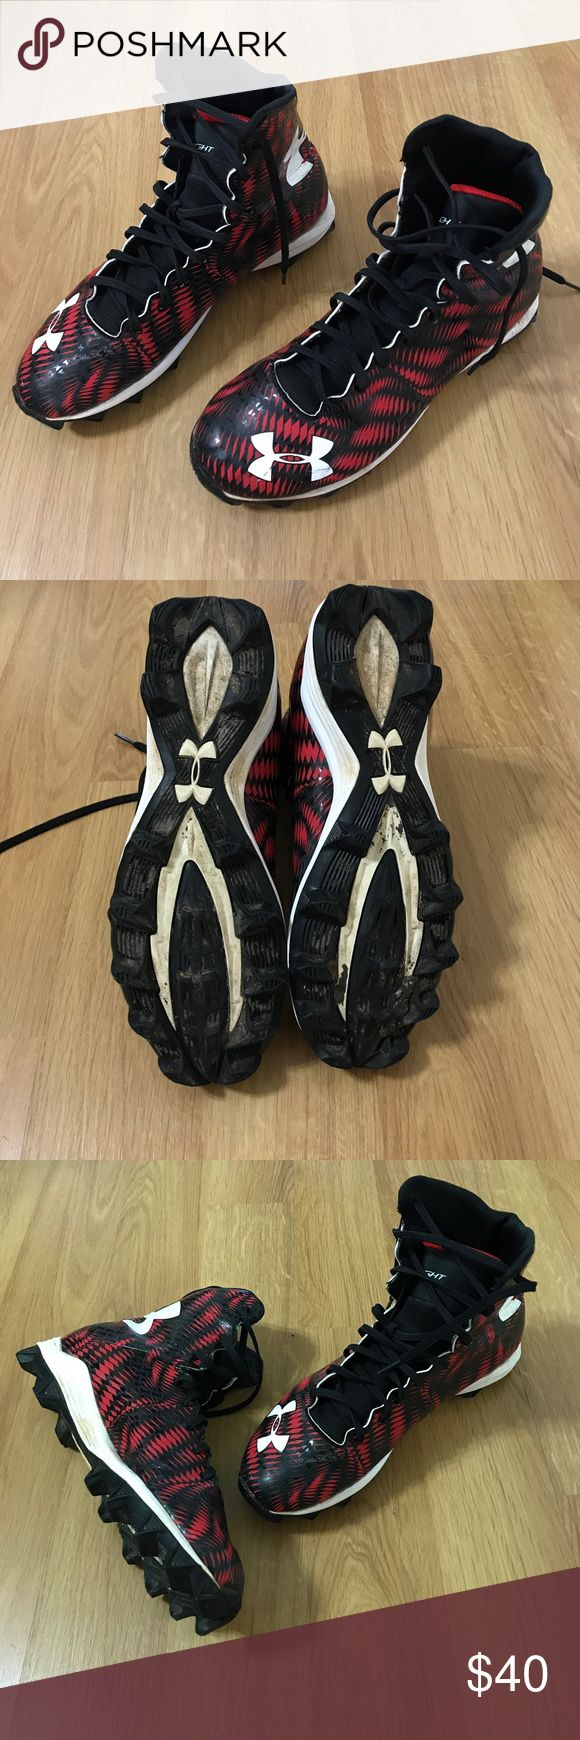 UNder Armour Football Cleats 🏈 Excellent pre-owned condition. Worn only 1 season. High top Highlight. Under Armour Shoes Athletic Shoes